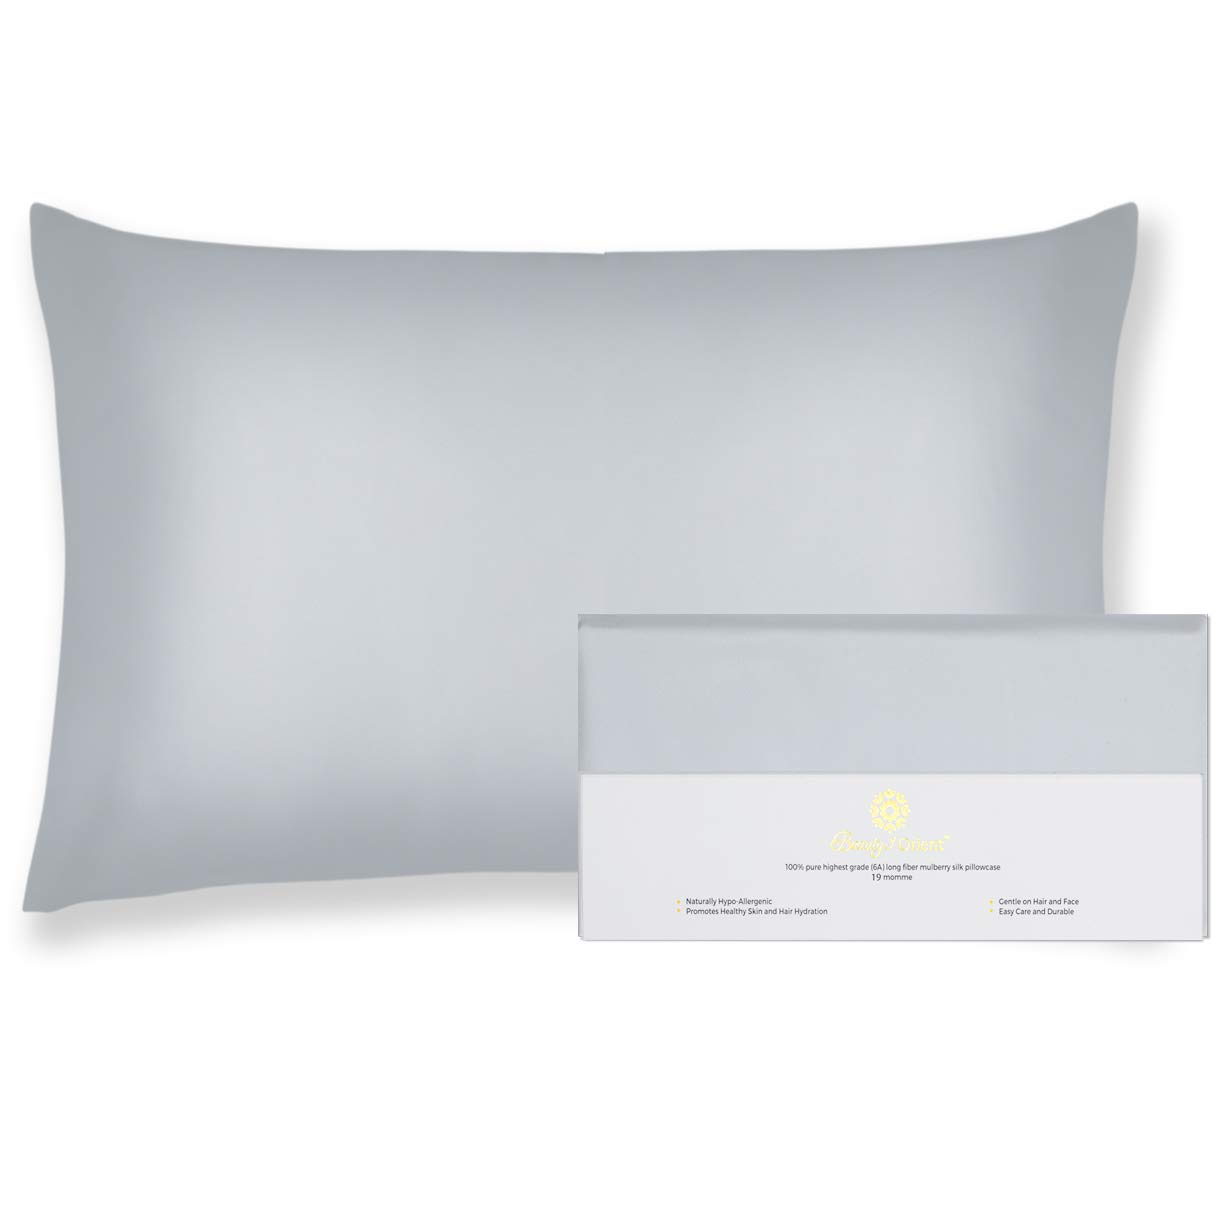 """Beauty of Orient - 100% Pure Mulberry Silk Pillowcase for Hair and Skin, 19 Momme Both Sides, Hidden Zipper - Natural Hypoallergenic Silk Pillow Case - Best Sleep (King - 20"""" x 36"""", Silver Lining)"""